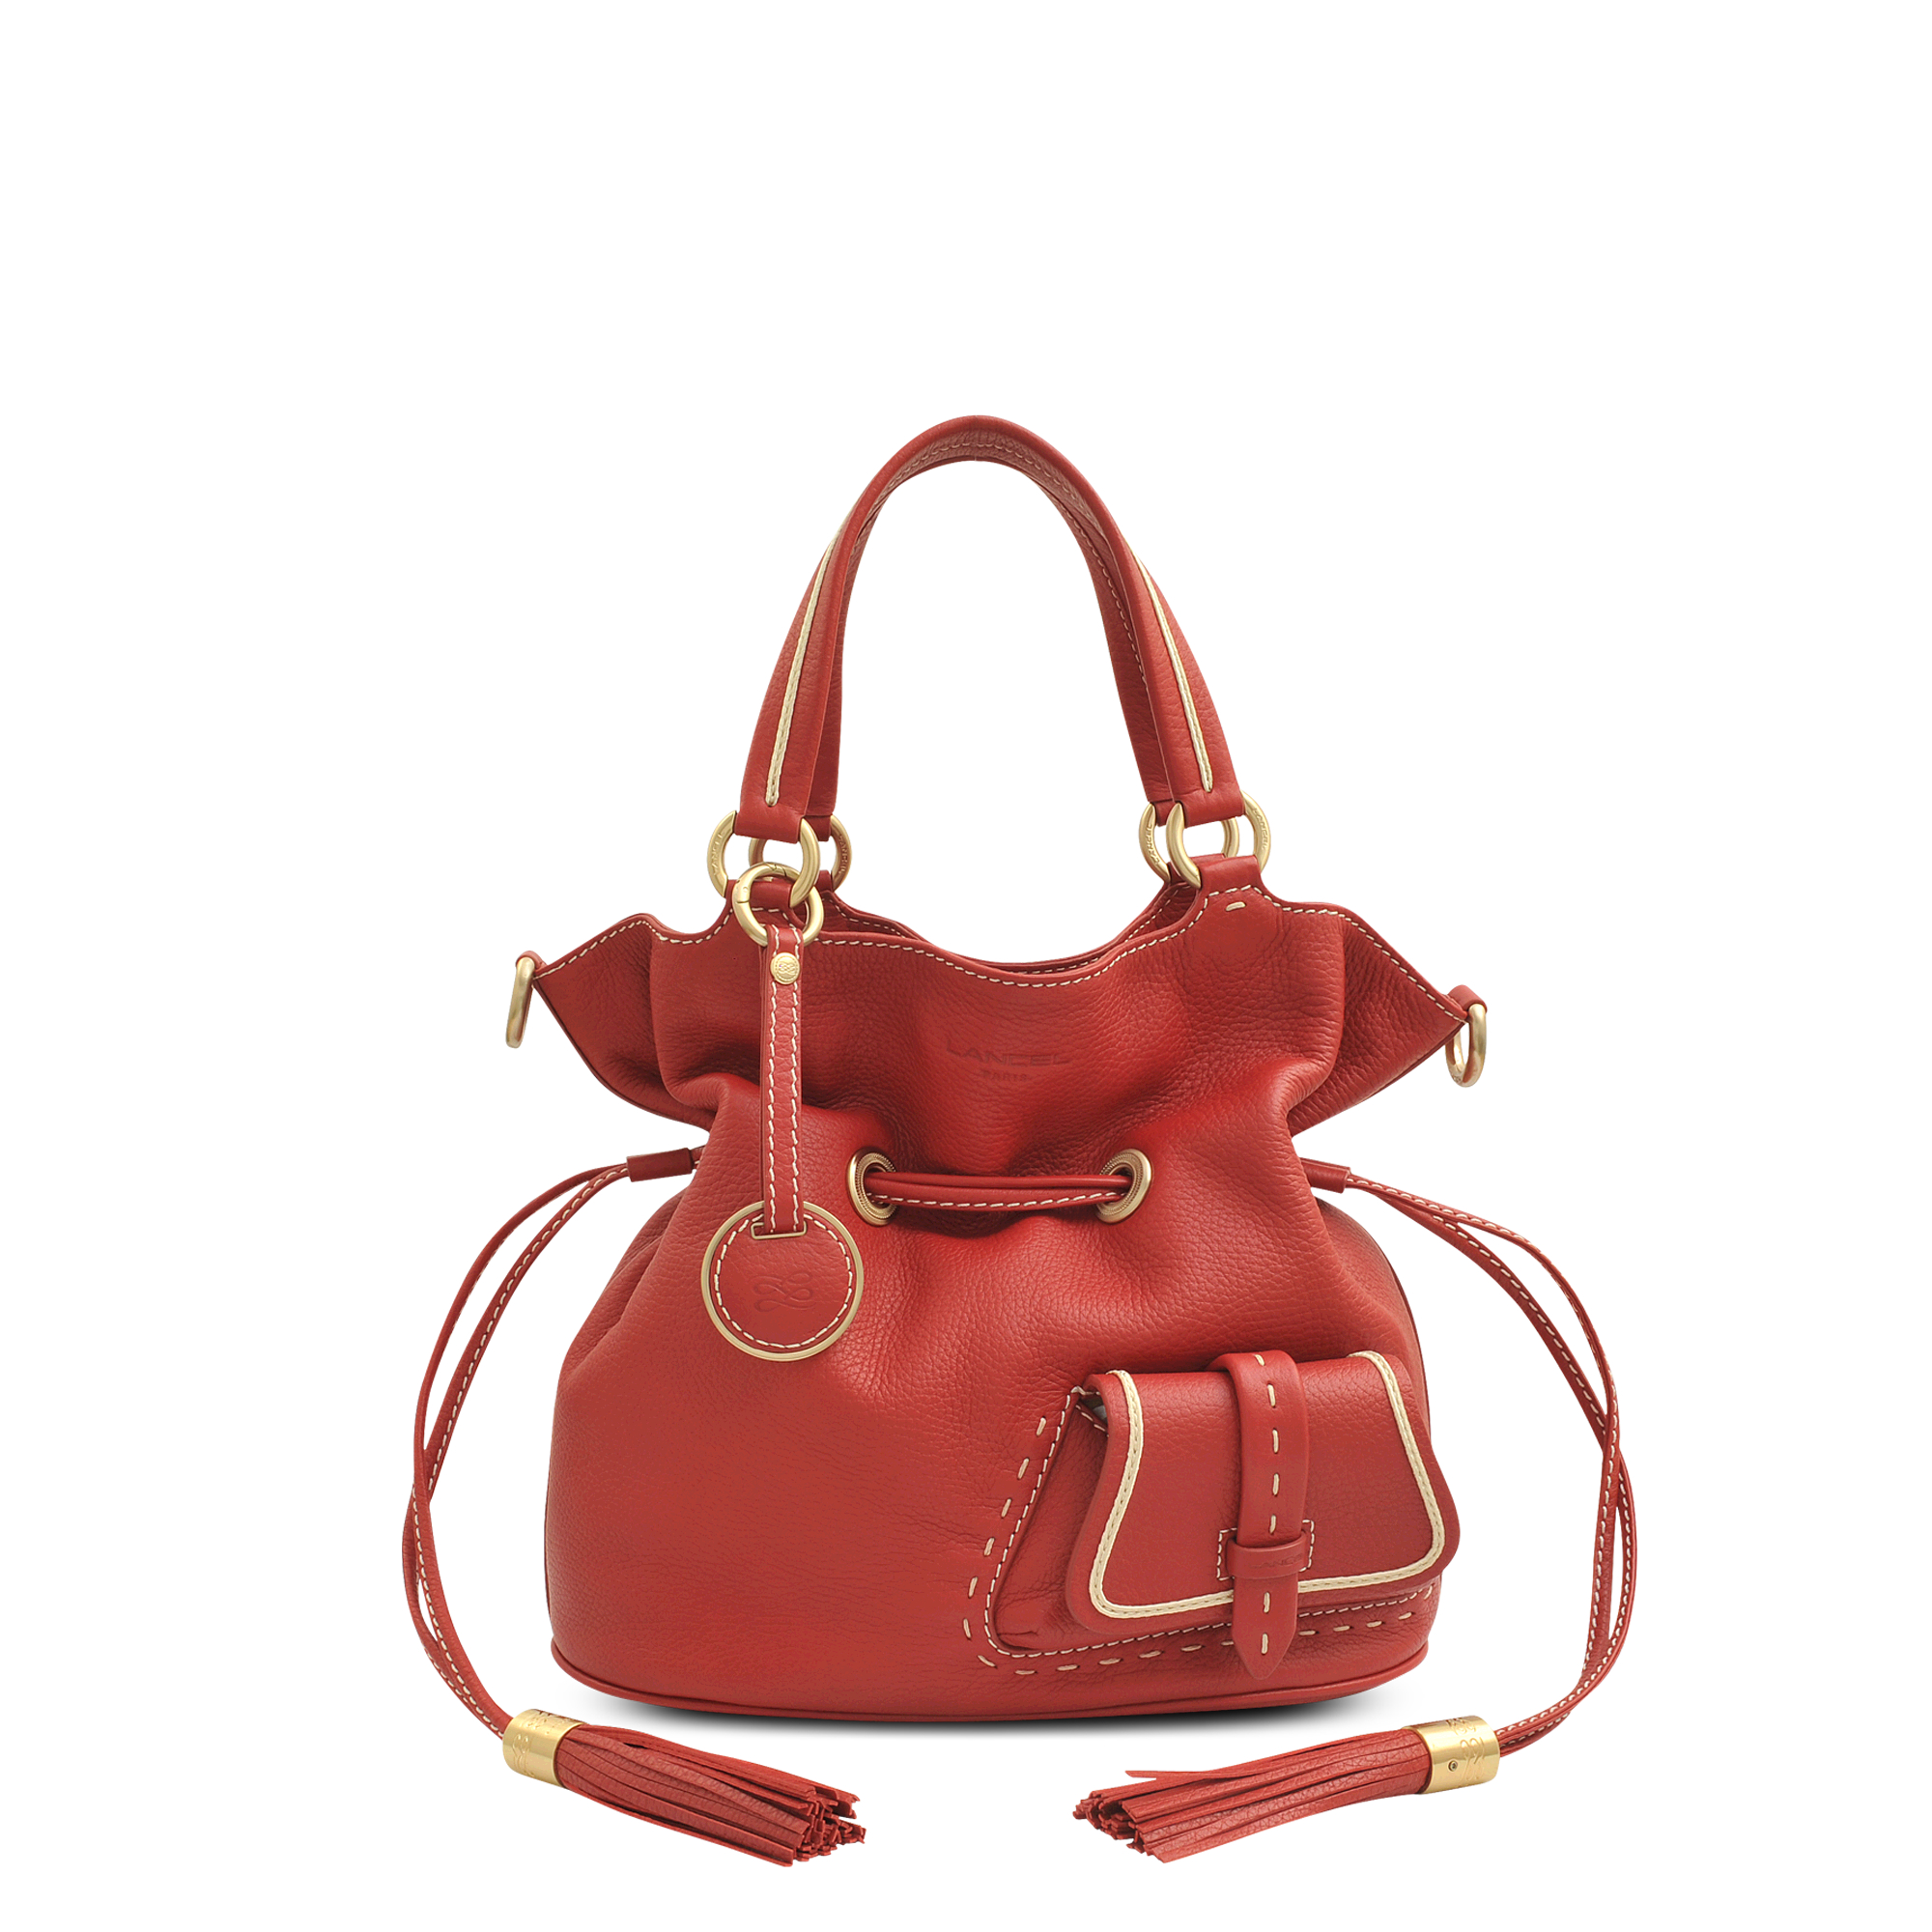 buy lancel premier flirt bag Results 1 - 37 of 37 shop from the world's largest selection and best deals for lancel bags lancel paris premier flirt handbag collection 4 pieces - in red.